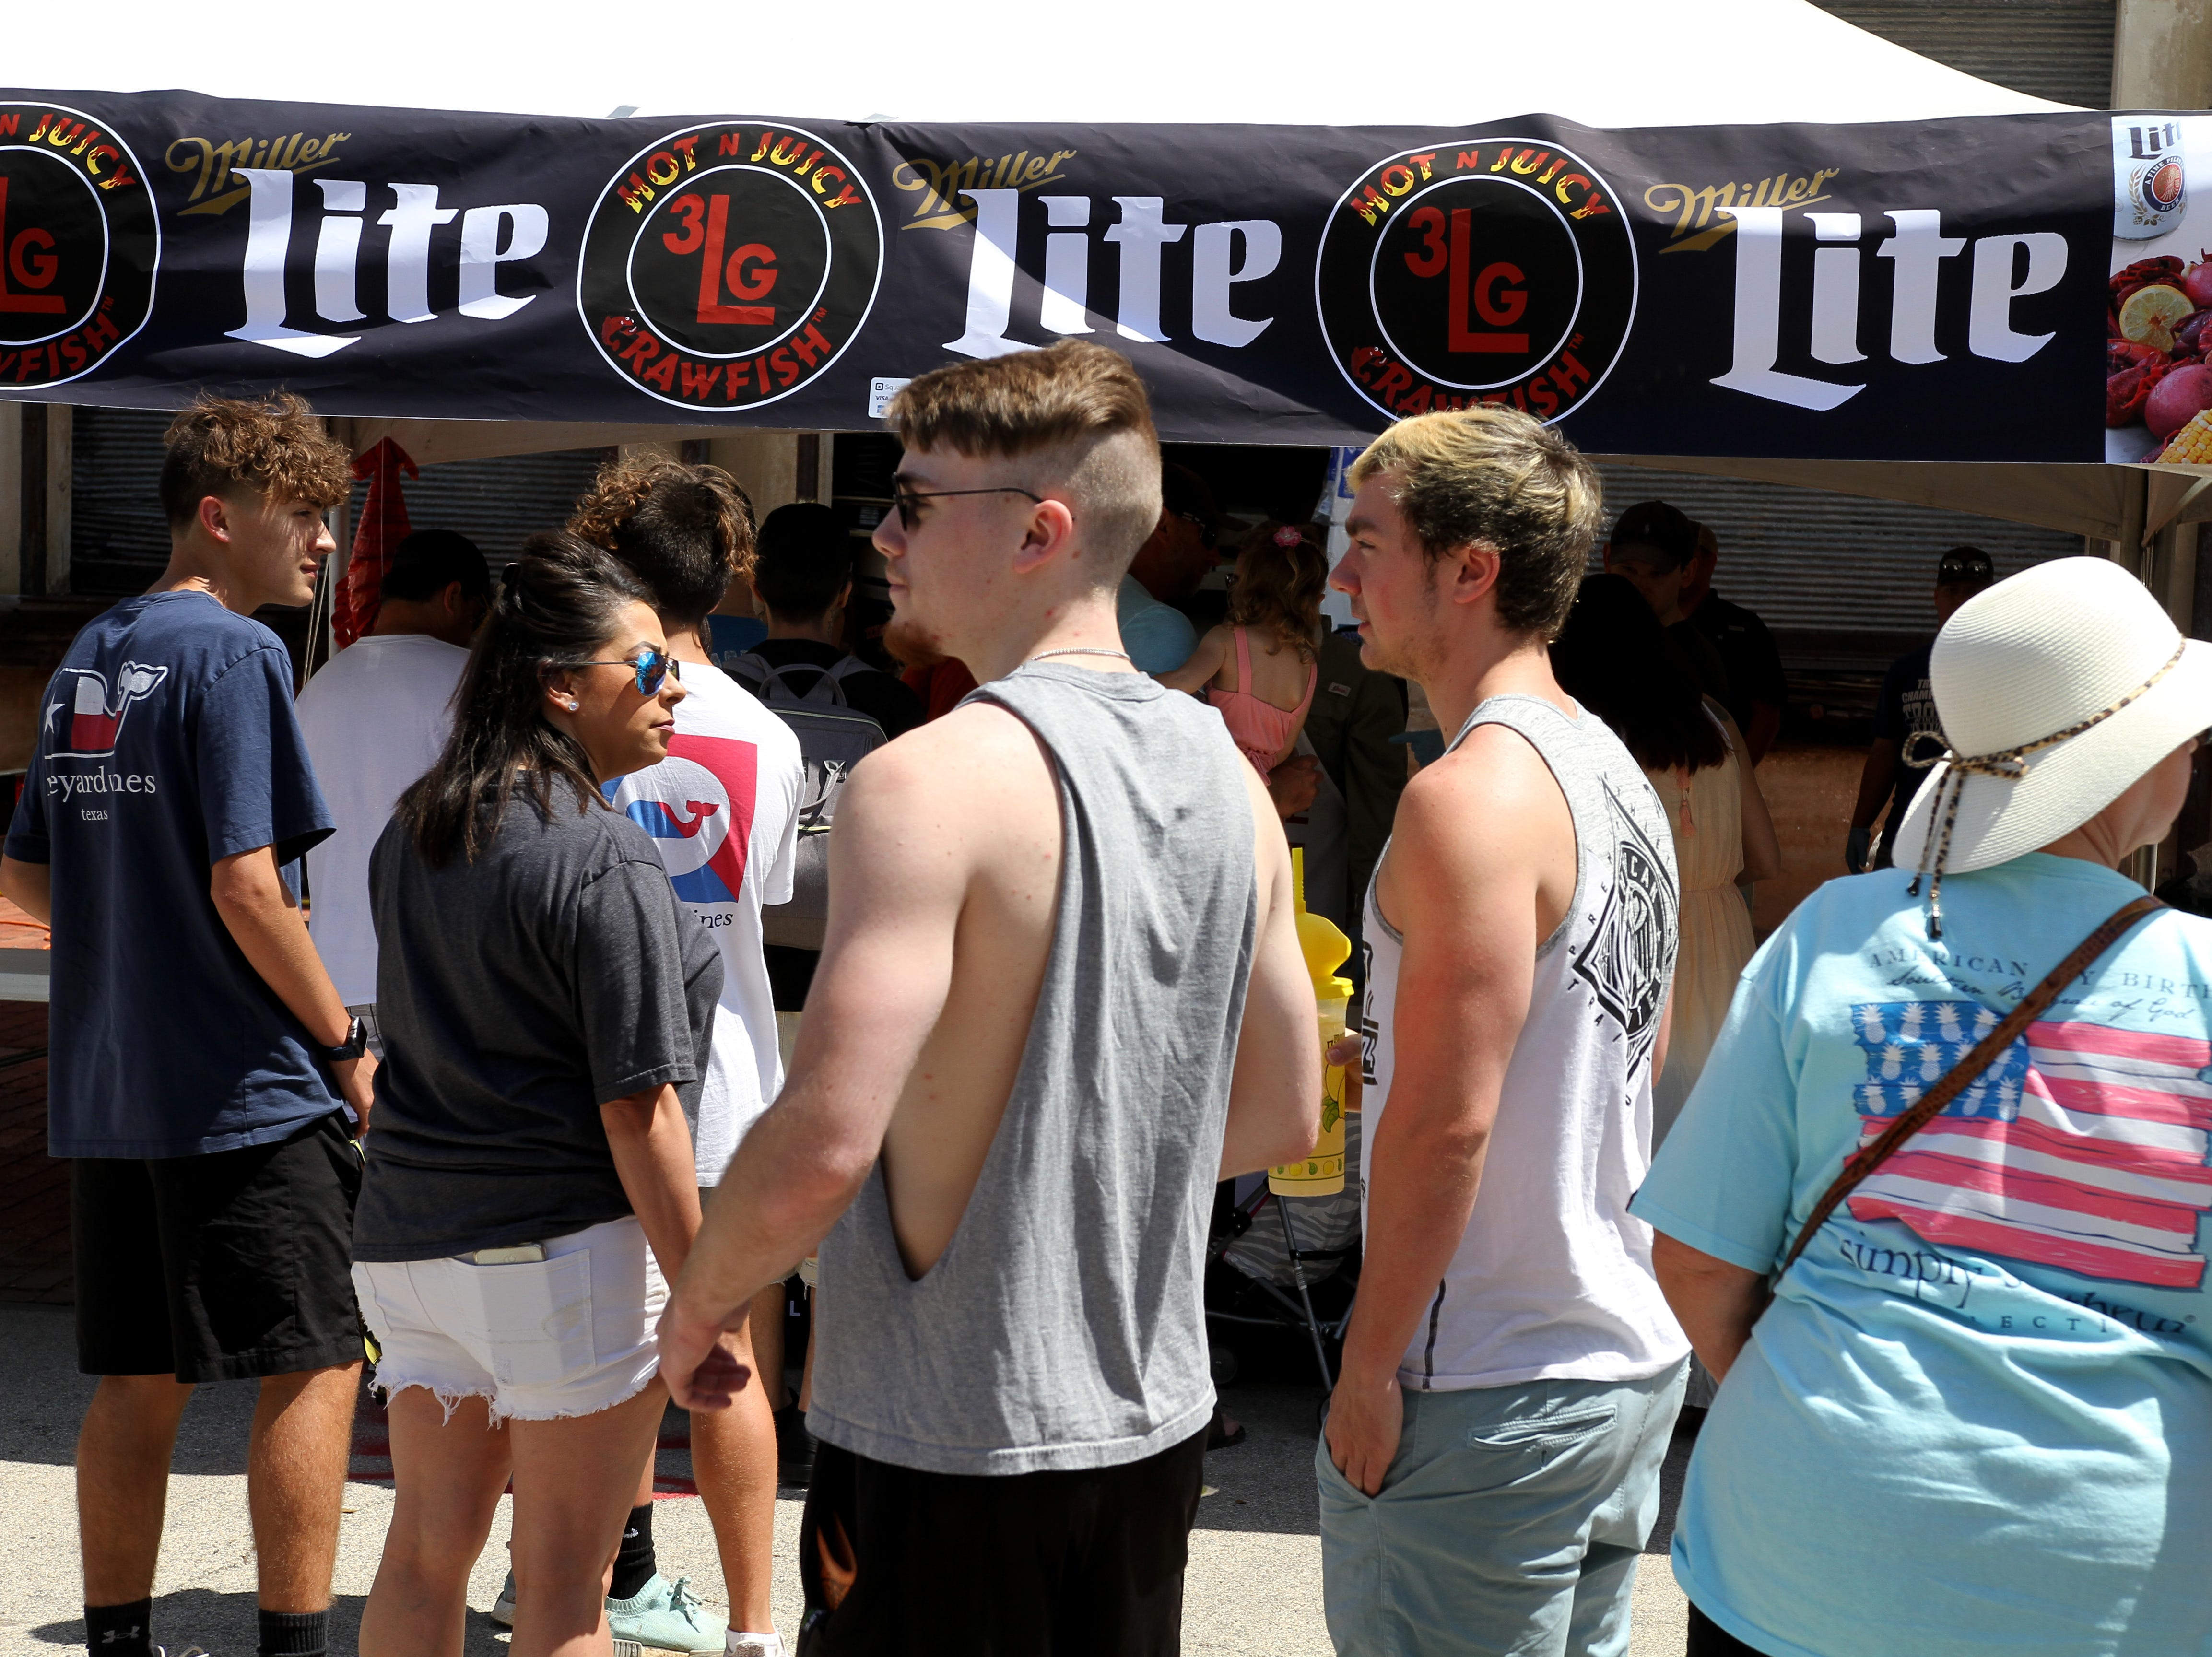 People stand in line for crawfish at Cajun Fest Saturday, April 27, 2019, at 10th and Ohio downtown.